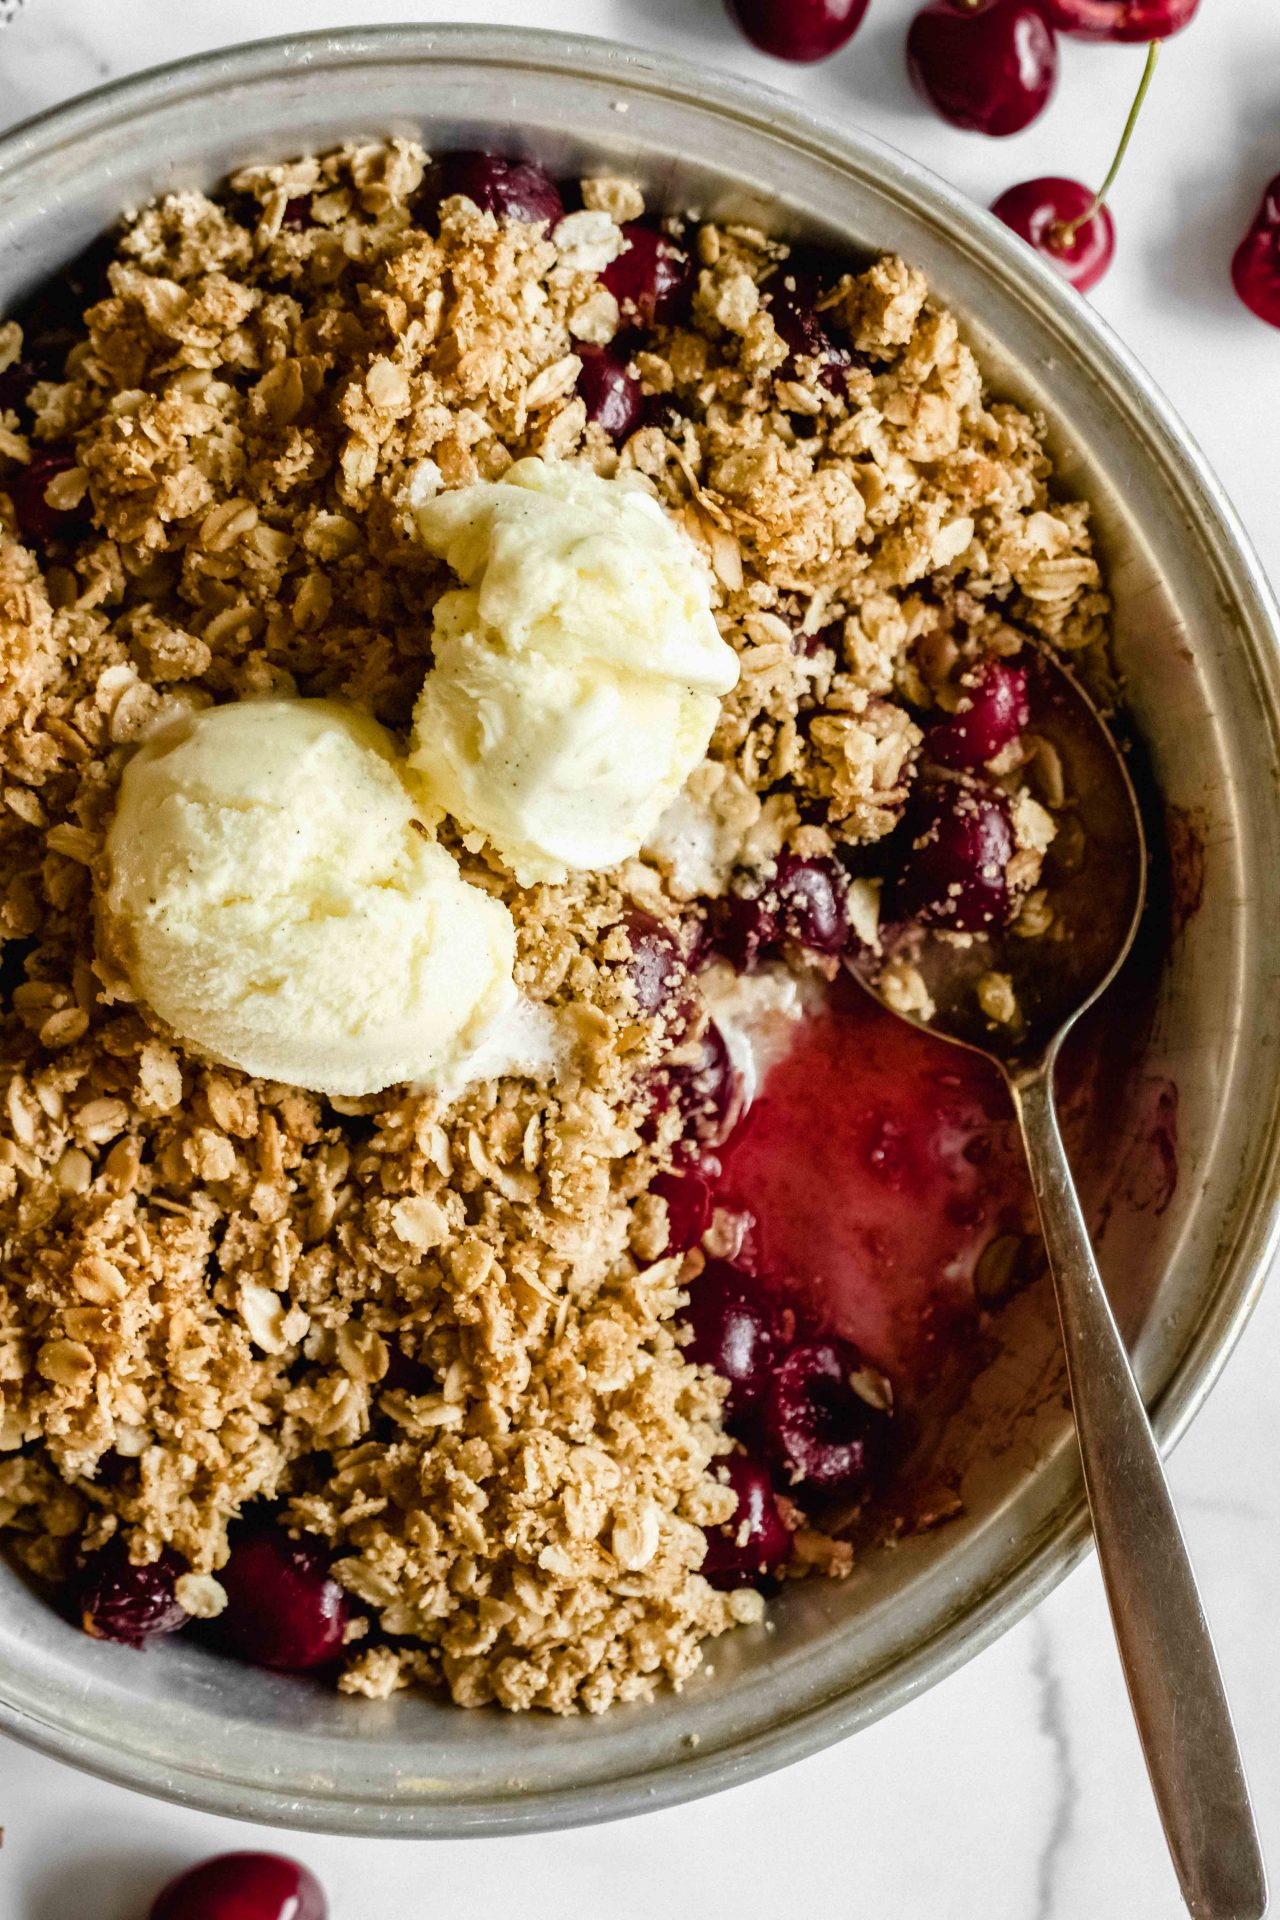 Cherry Vanilla Crumble